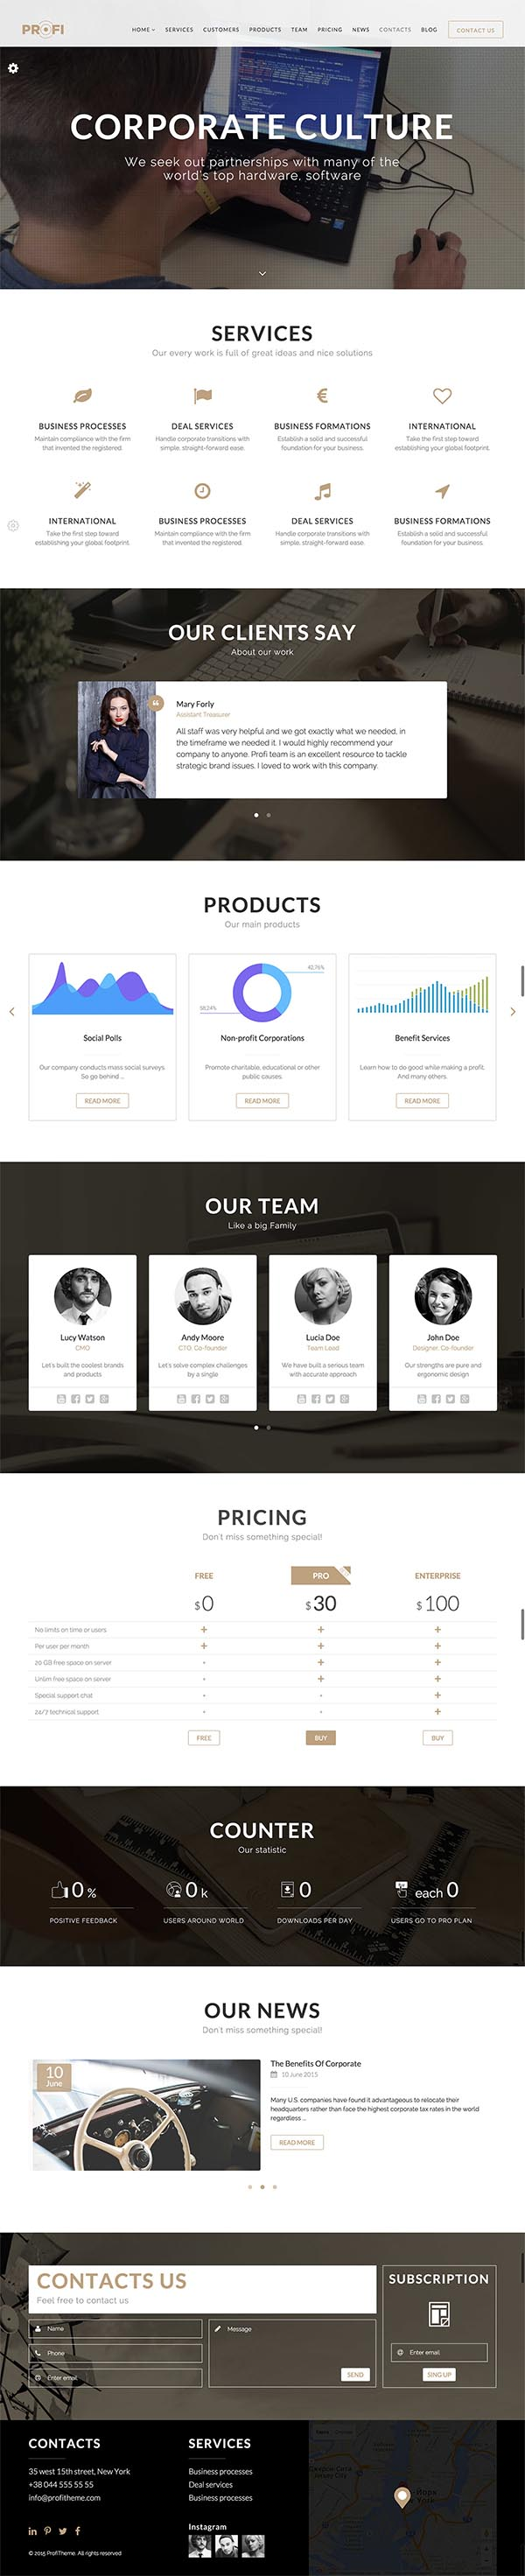 Profi - Multipurpose Corporate HTML Template